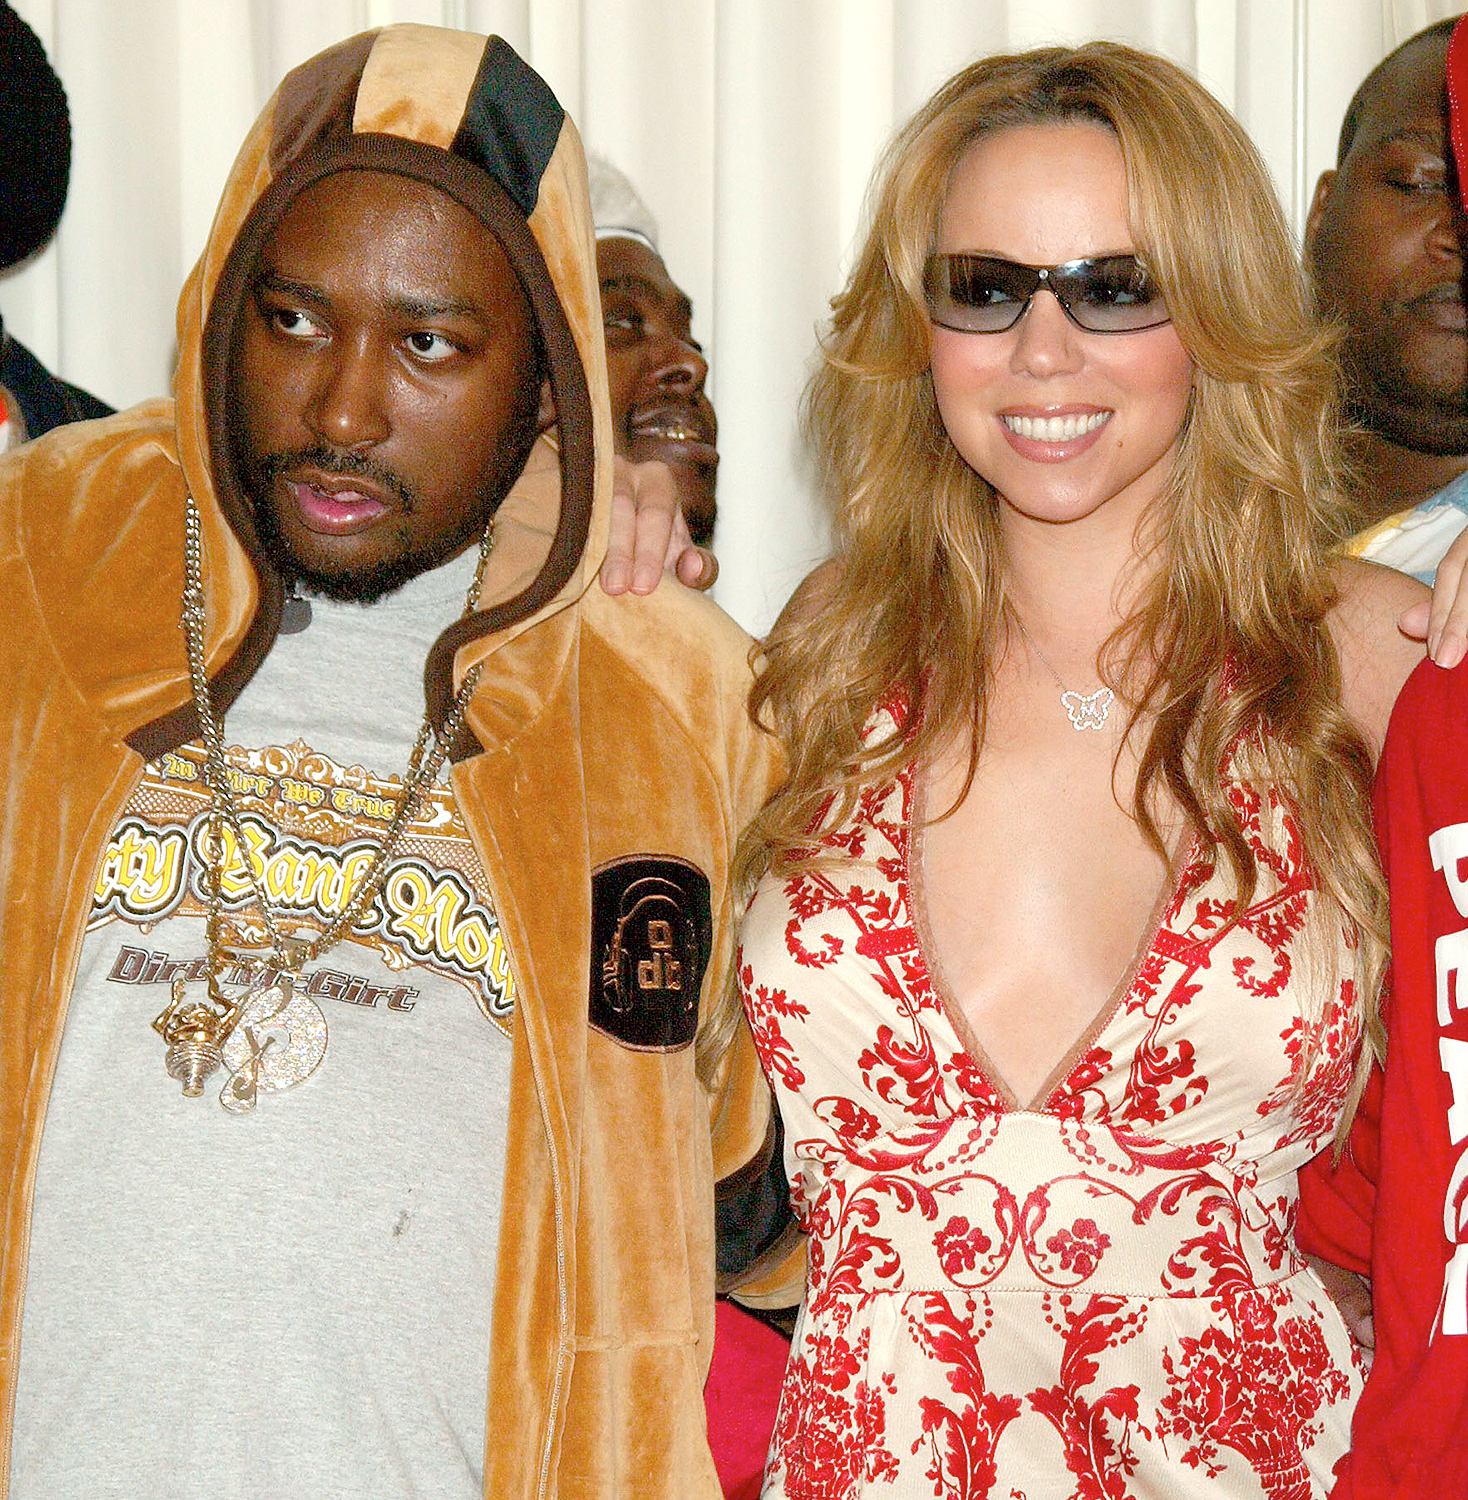 Mariah Carey, Ol' Dirty Bastard